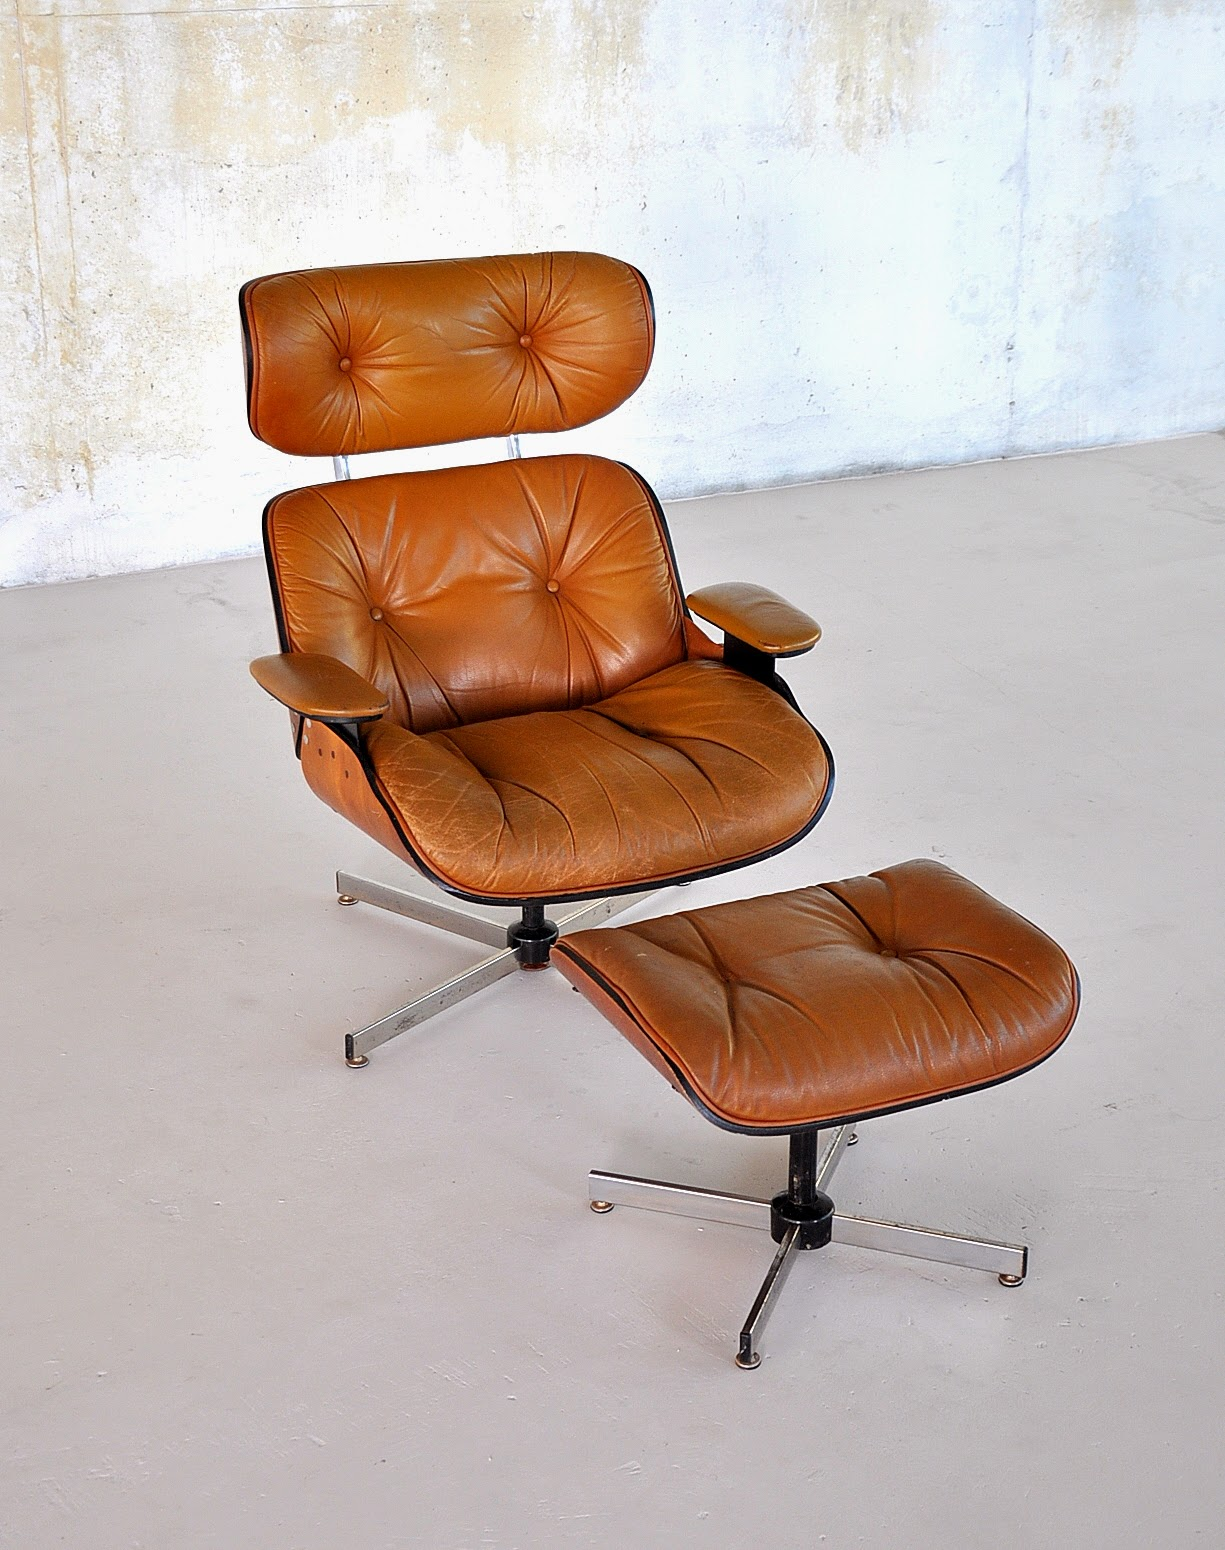 Charles Eames Herman Miller Chair Select Modern: Eames Leather Lounge Chair & Ottoman